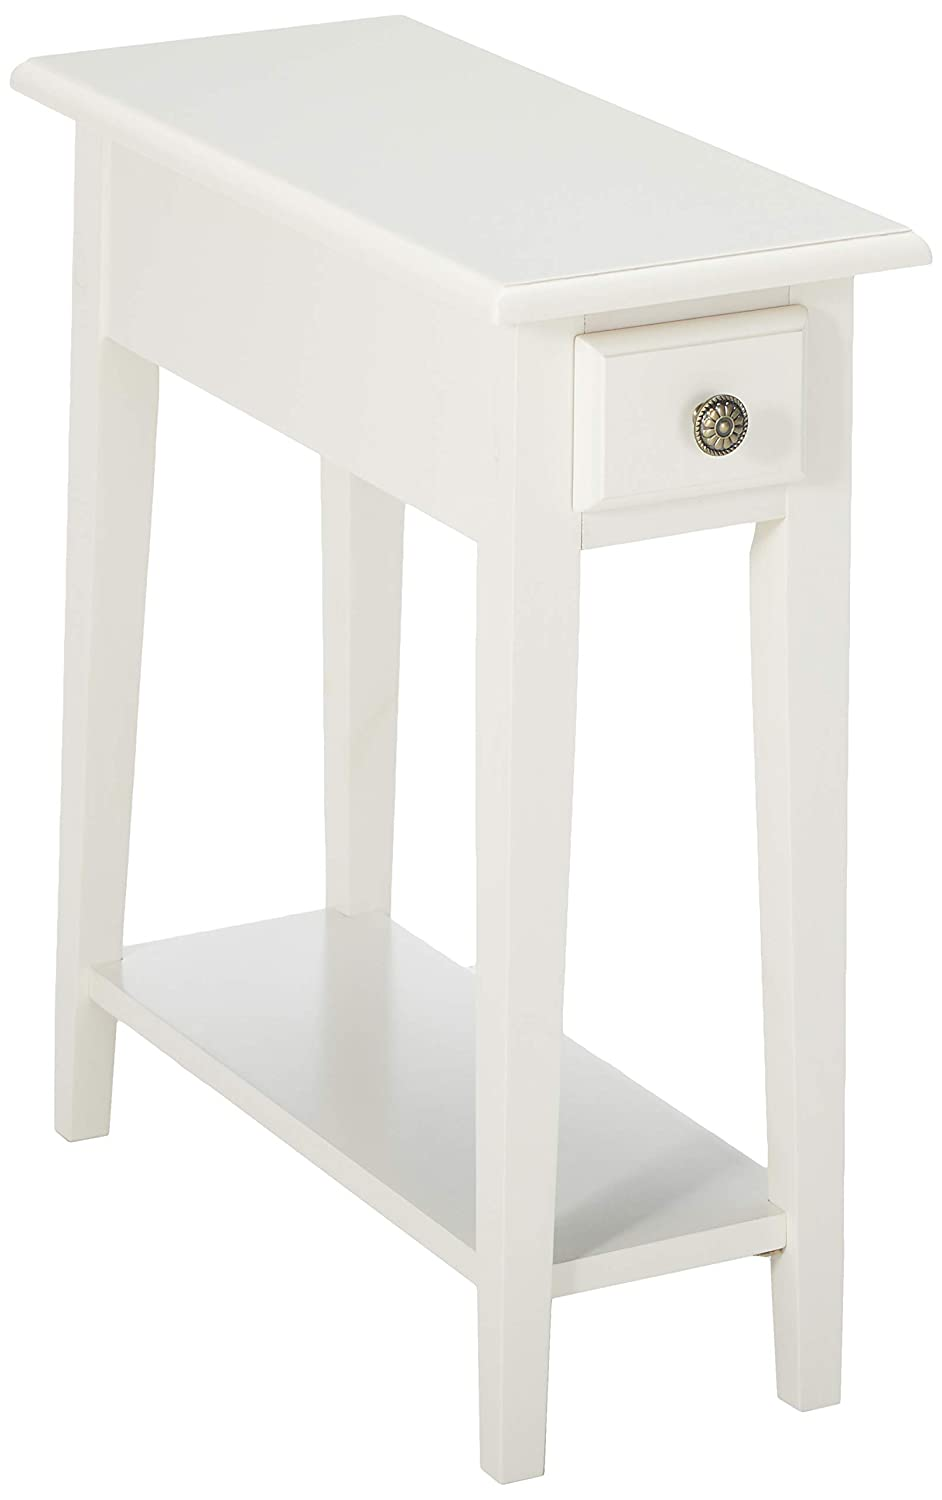 Frenchi Home Furnishing Chair Side Table with Storage, Queen, White